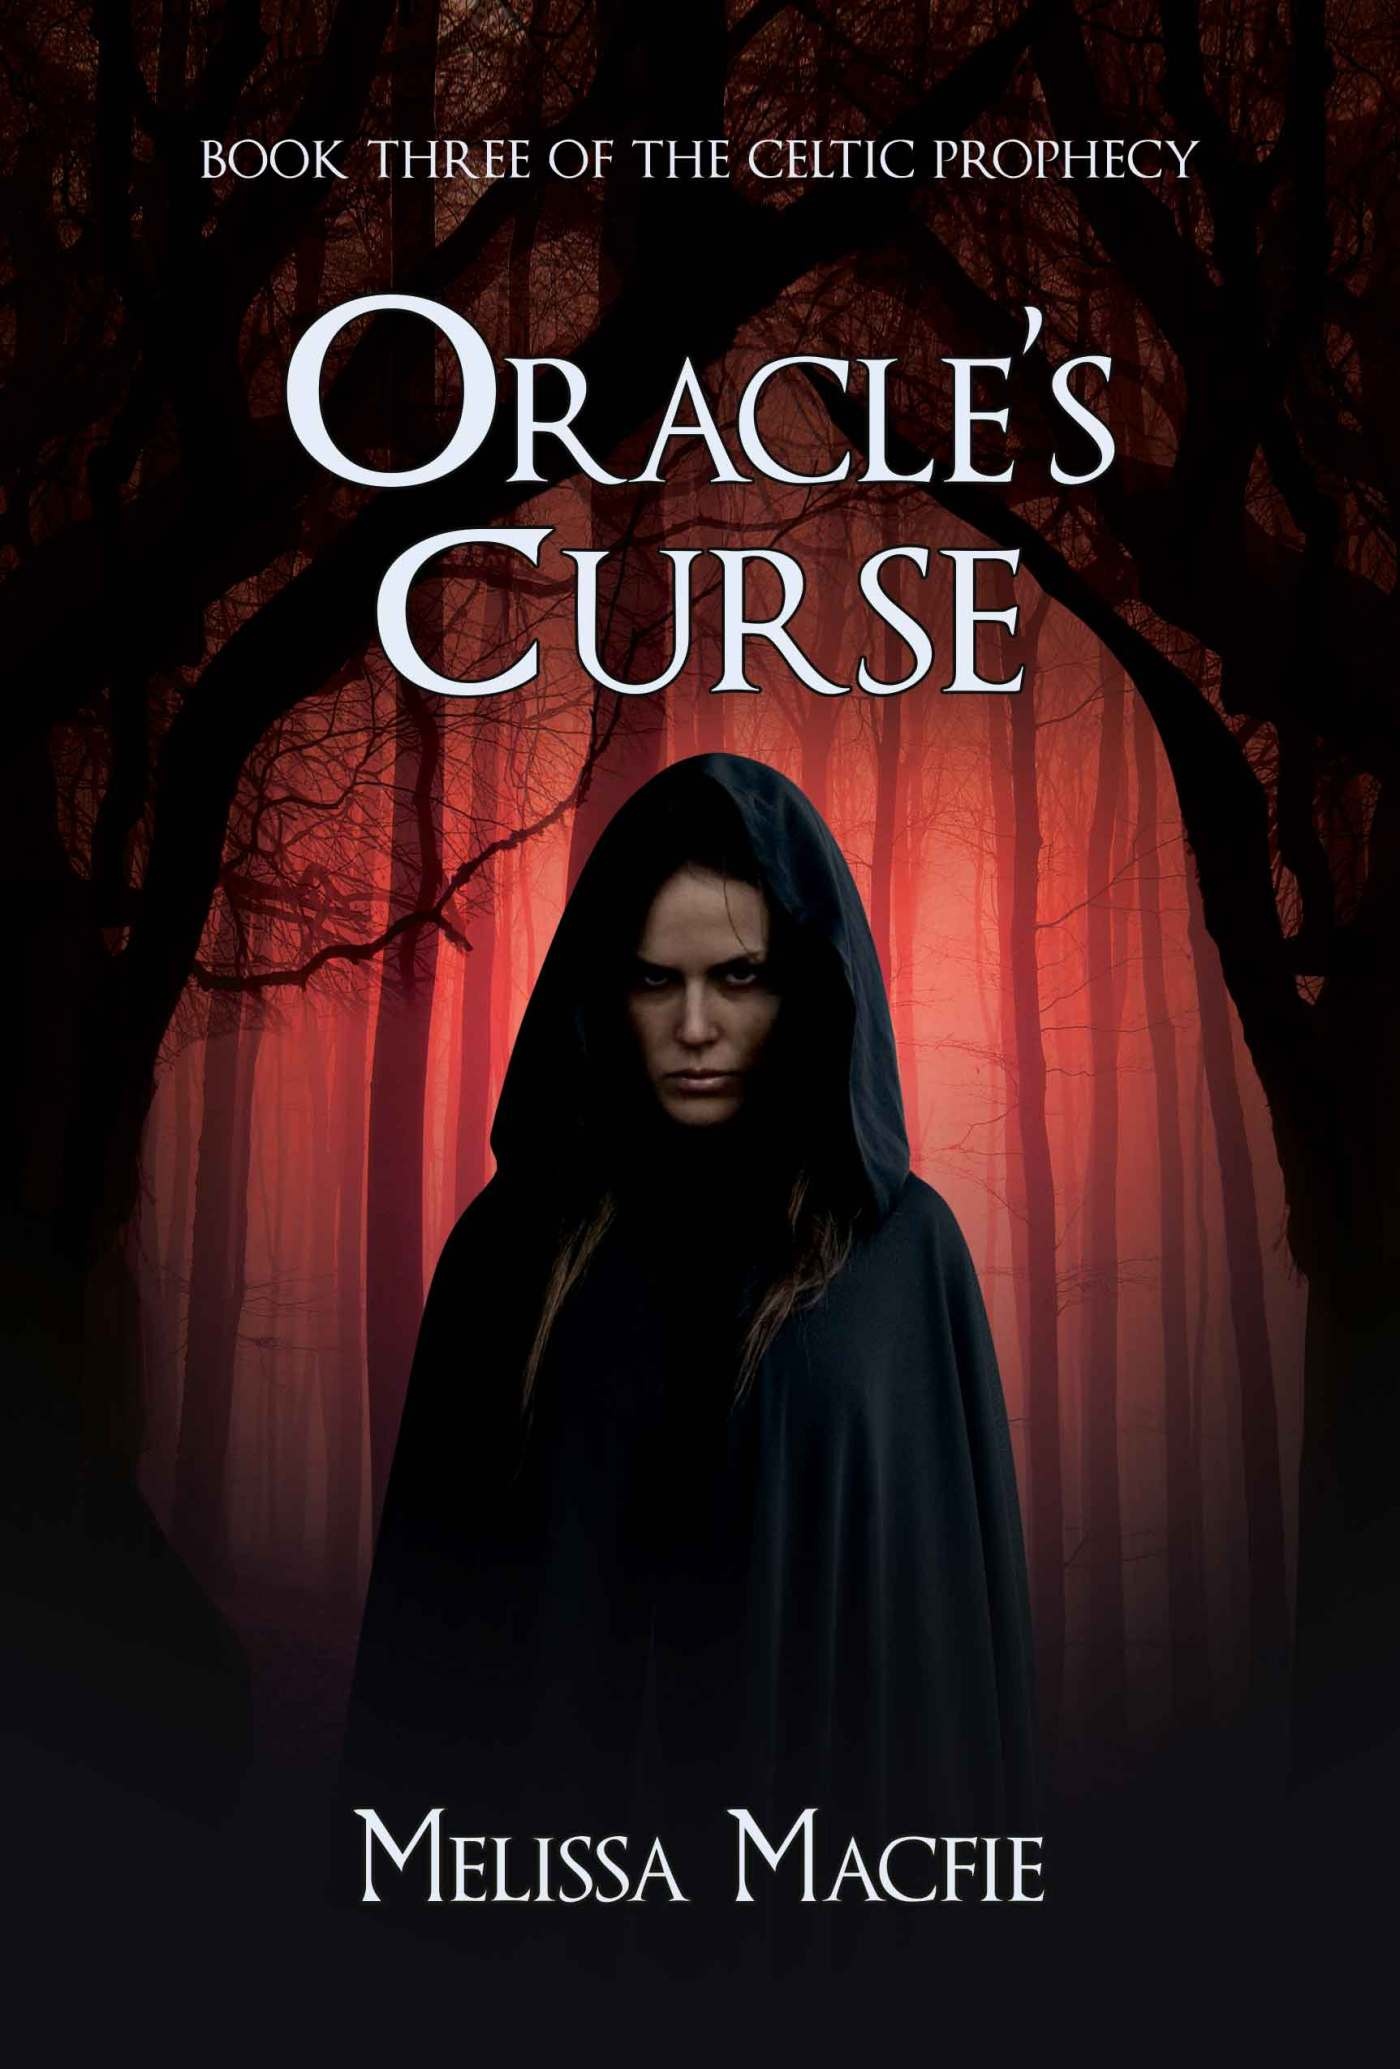 oracles curse book cover